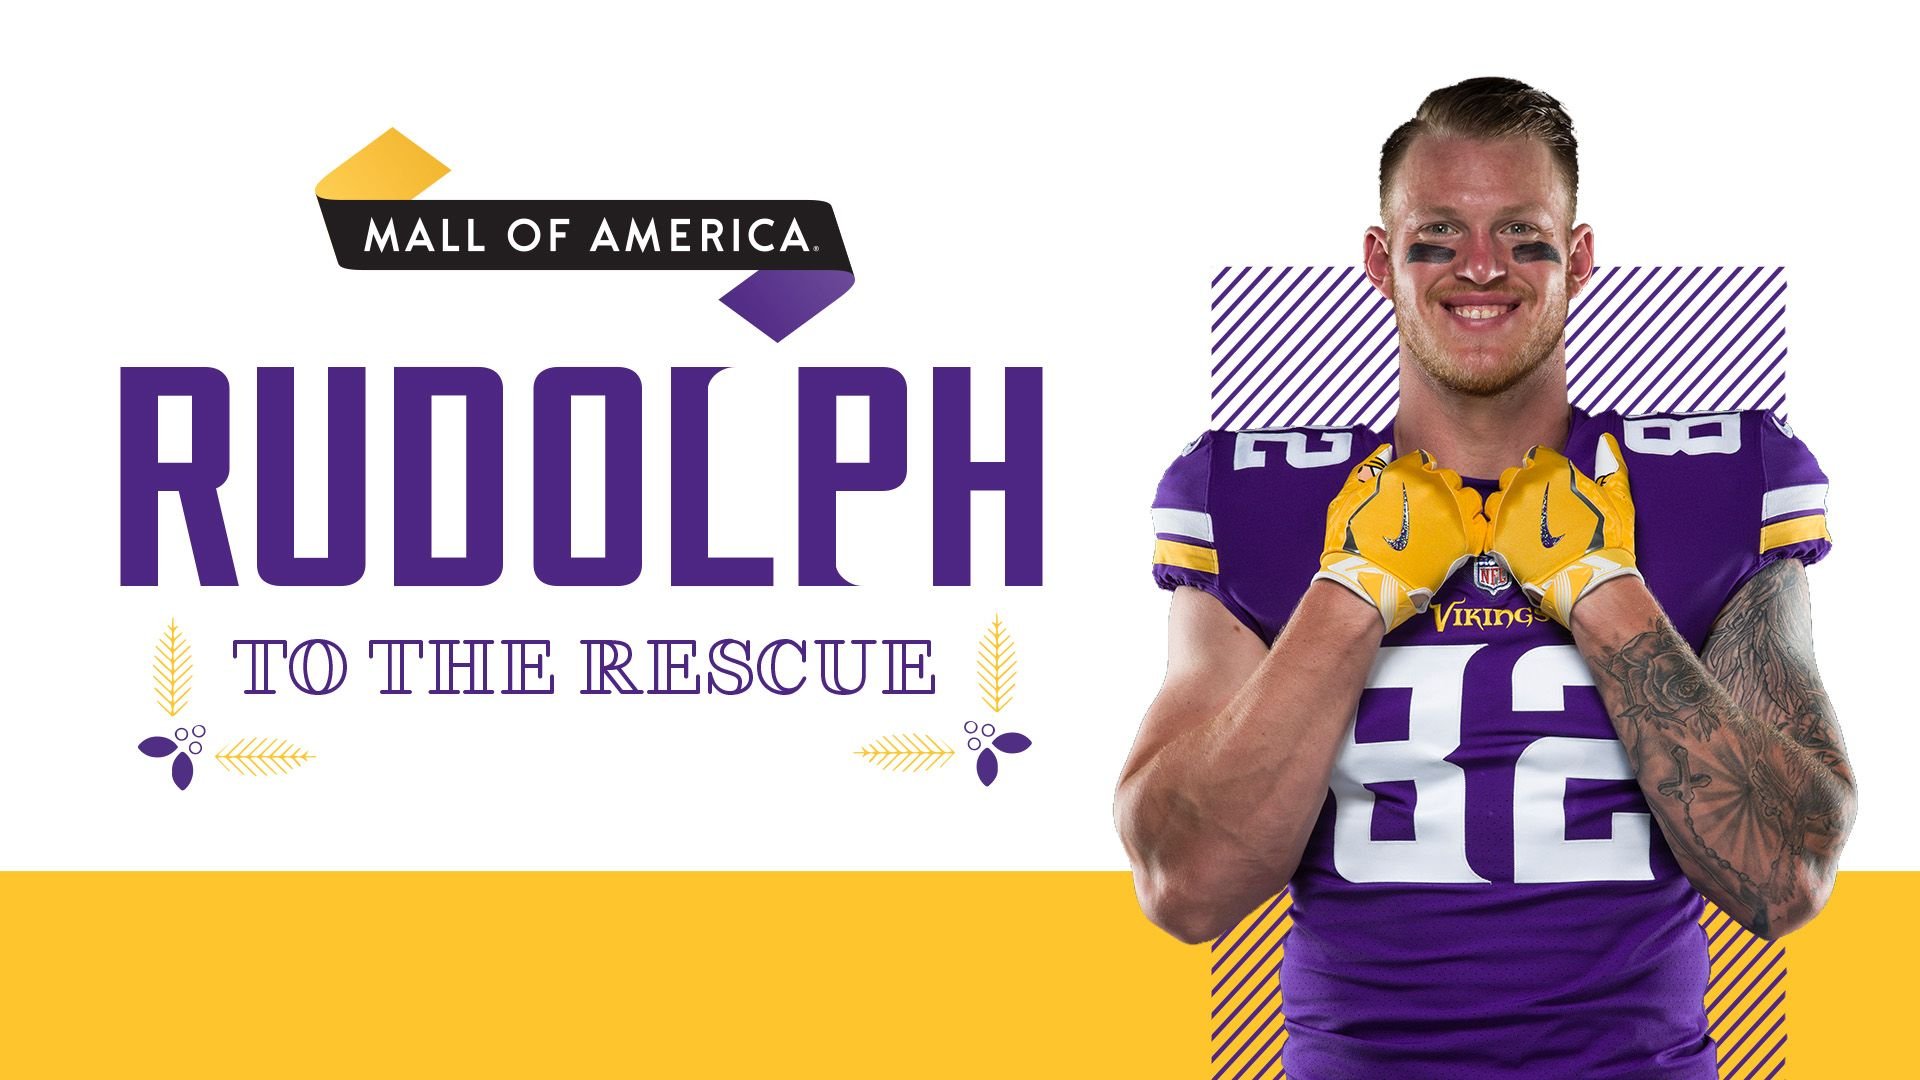 Enter to win a $1,000 MOA® holiday shopping spree with Kyle Rudolph!